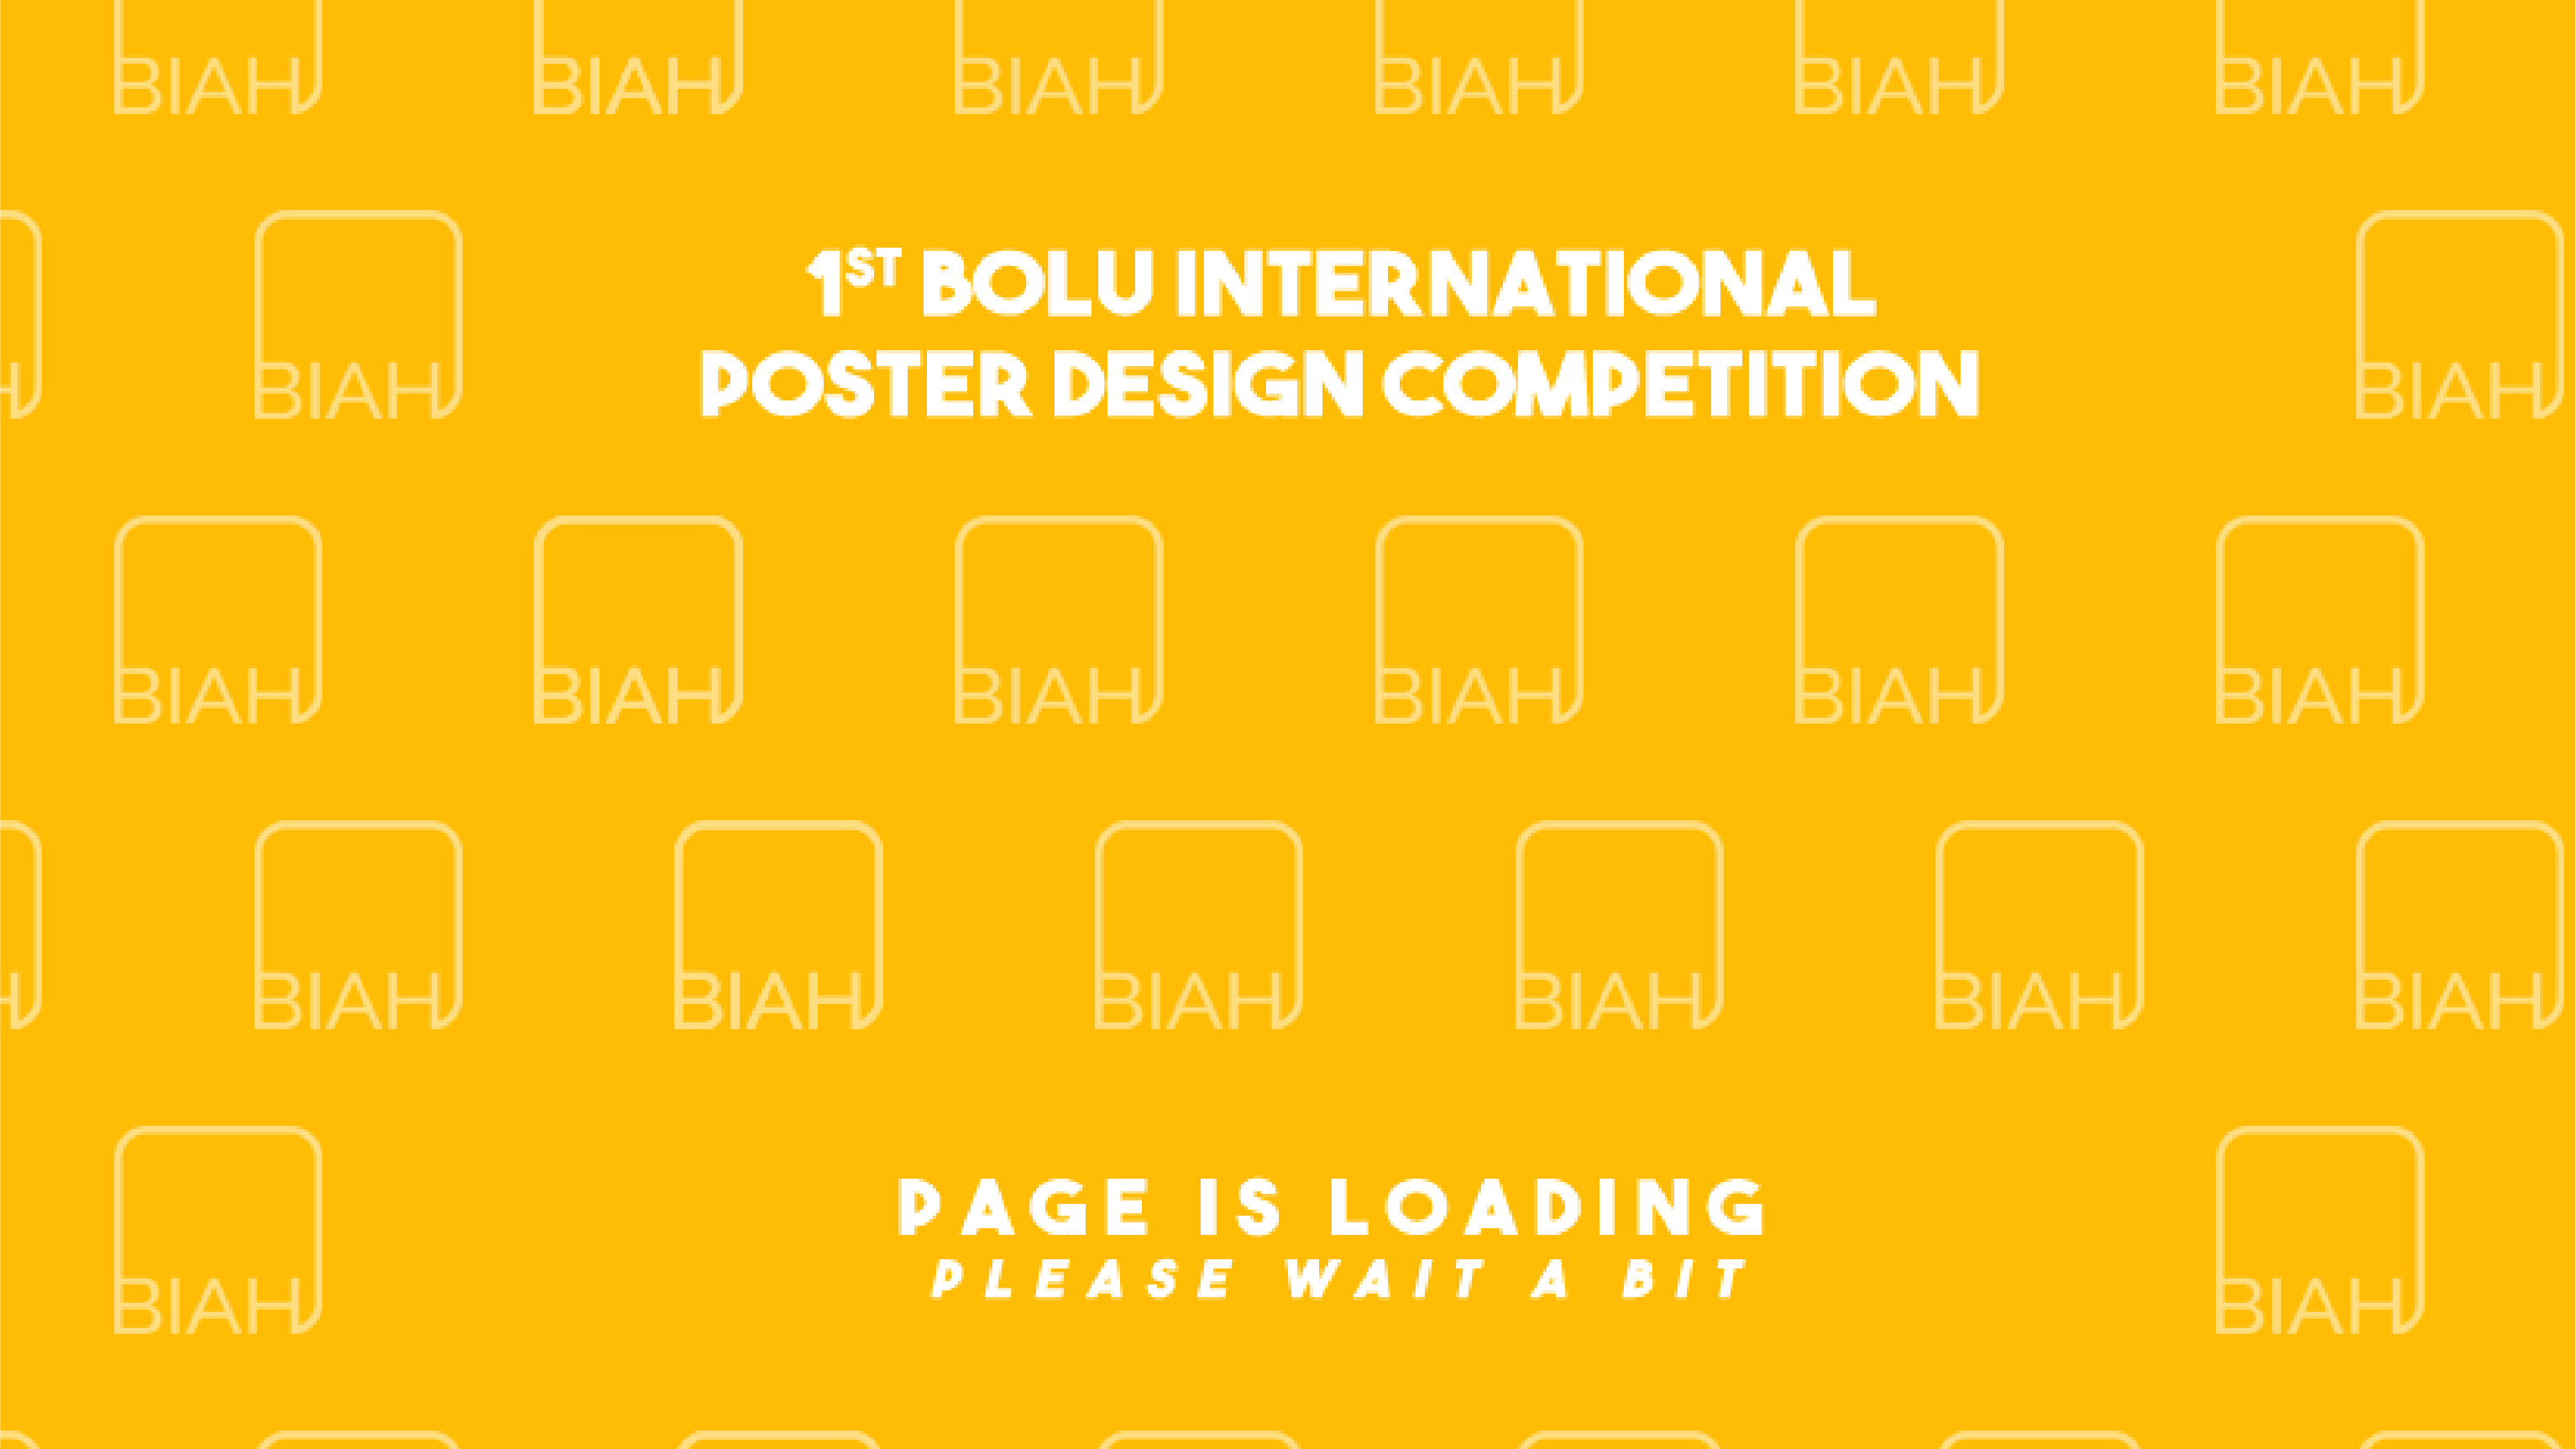 فراخوان Bolu International Poster Design